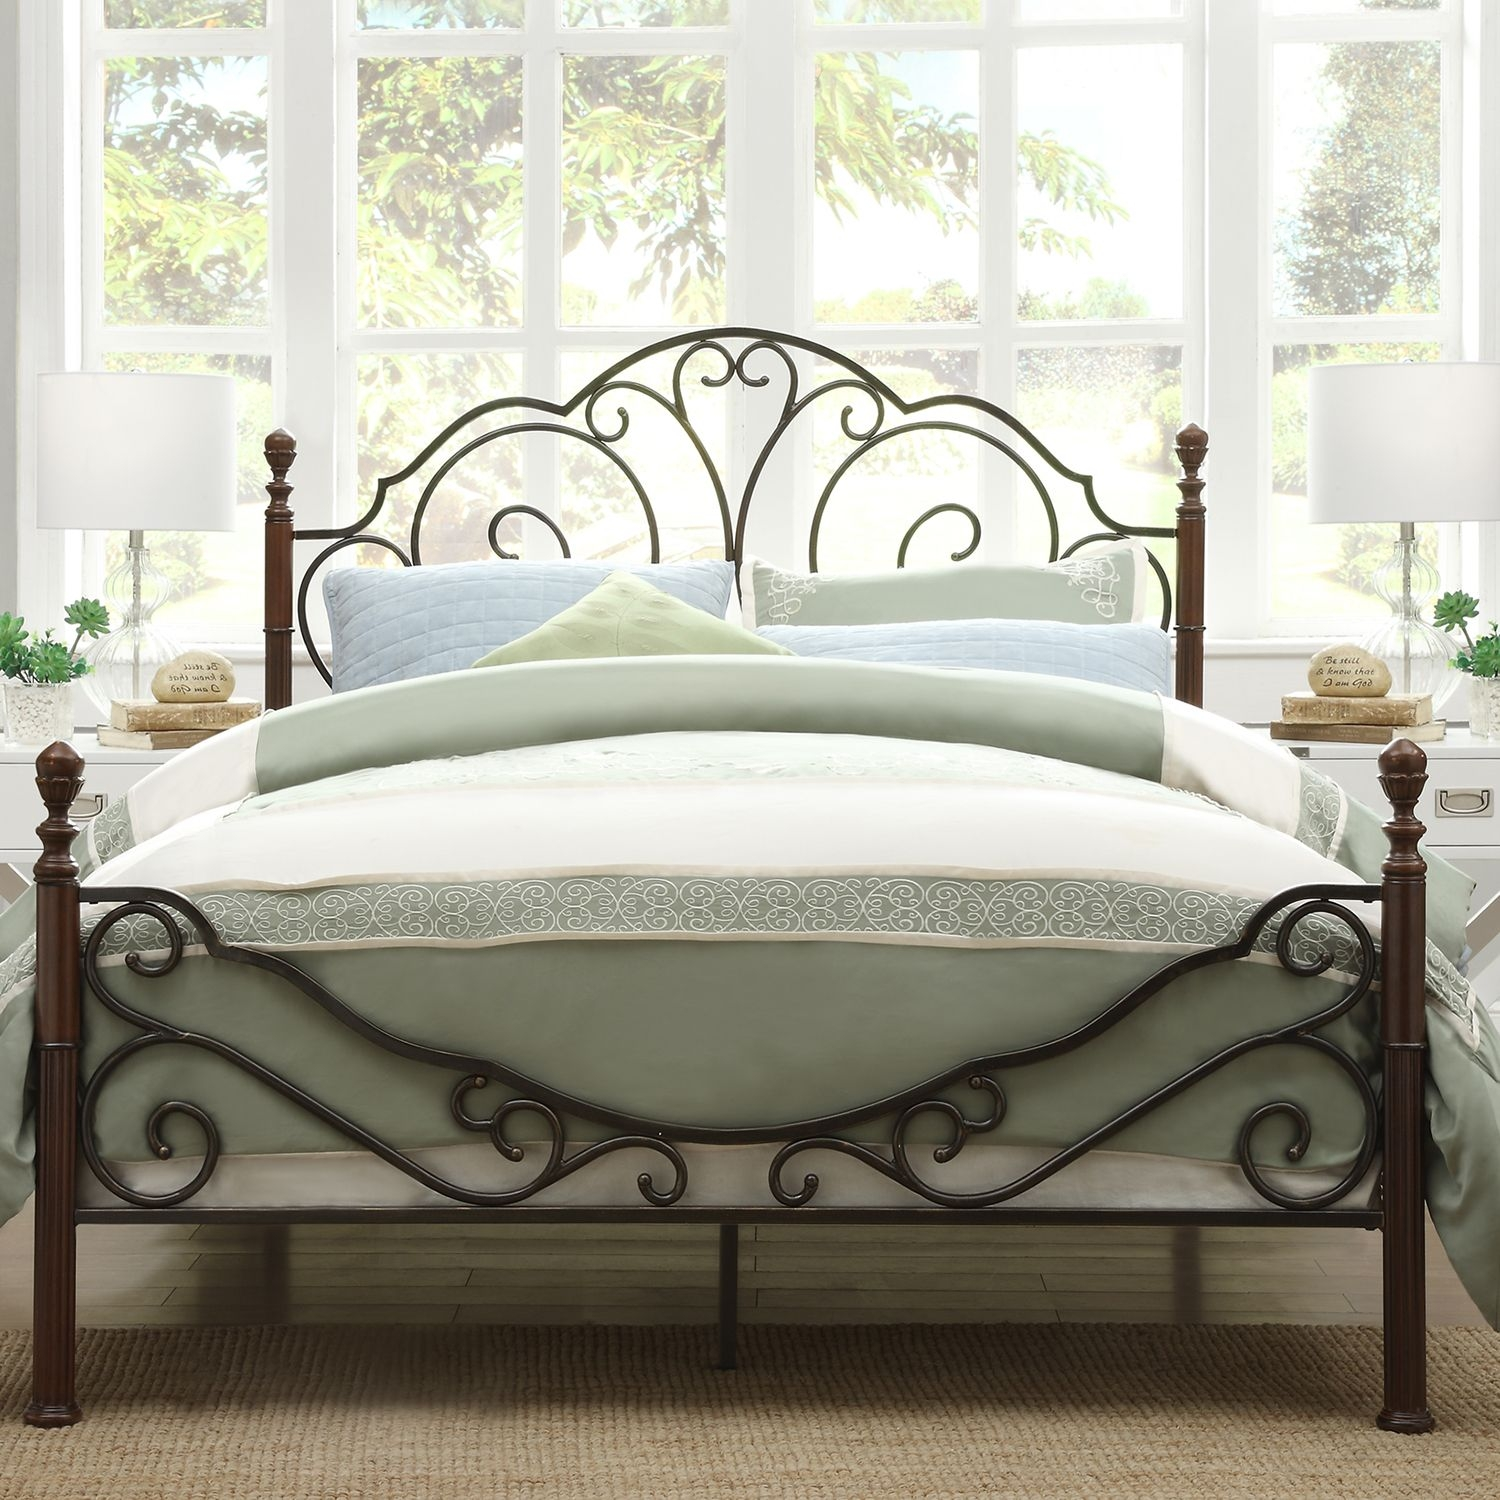 Simple Full Size Metal Bed Frame Property